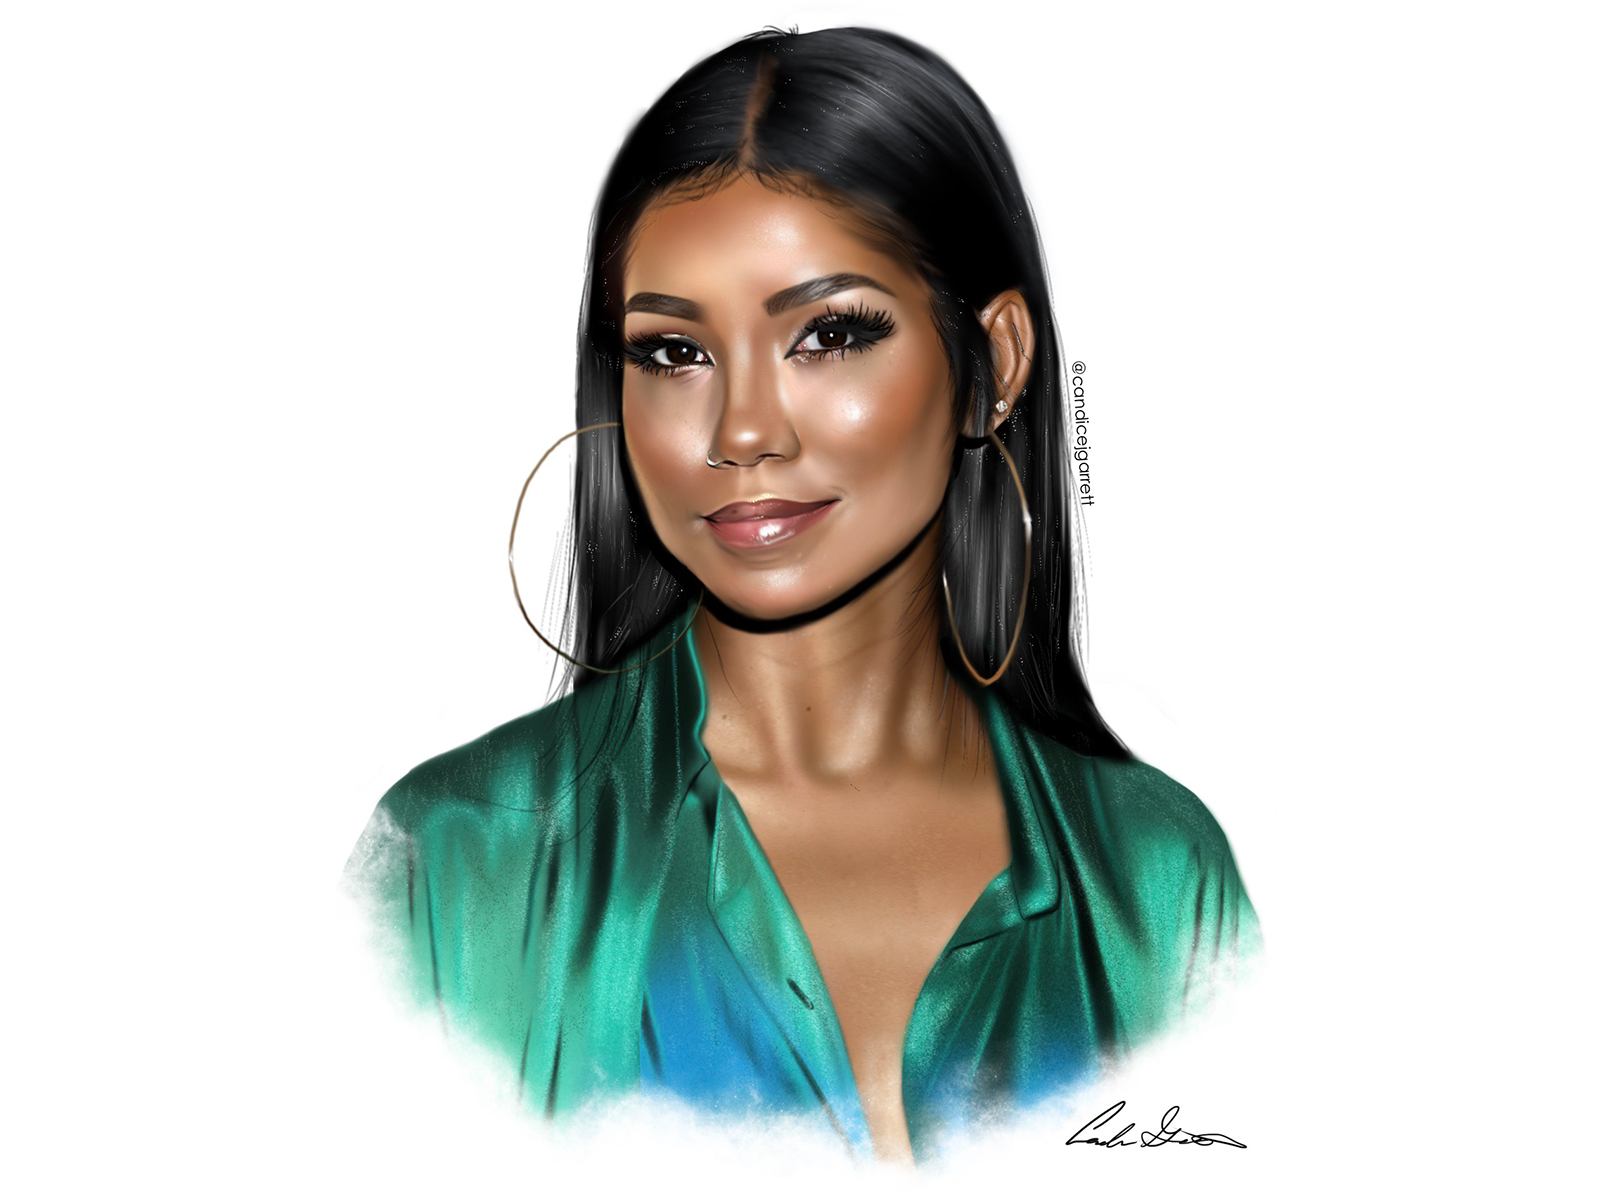 Jhene Aiko Digital Painting By Candice J Garrett On Dribbble